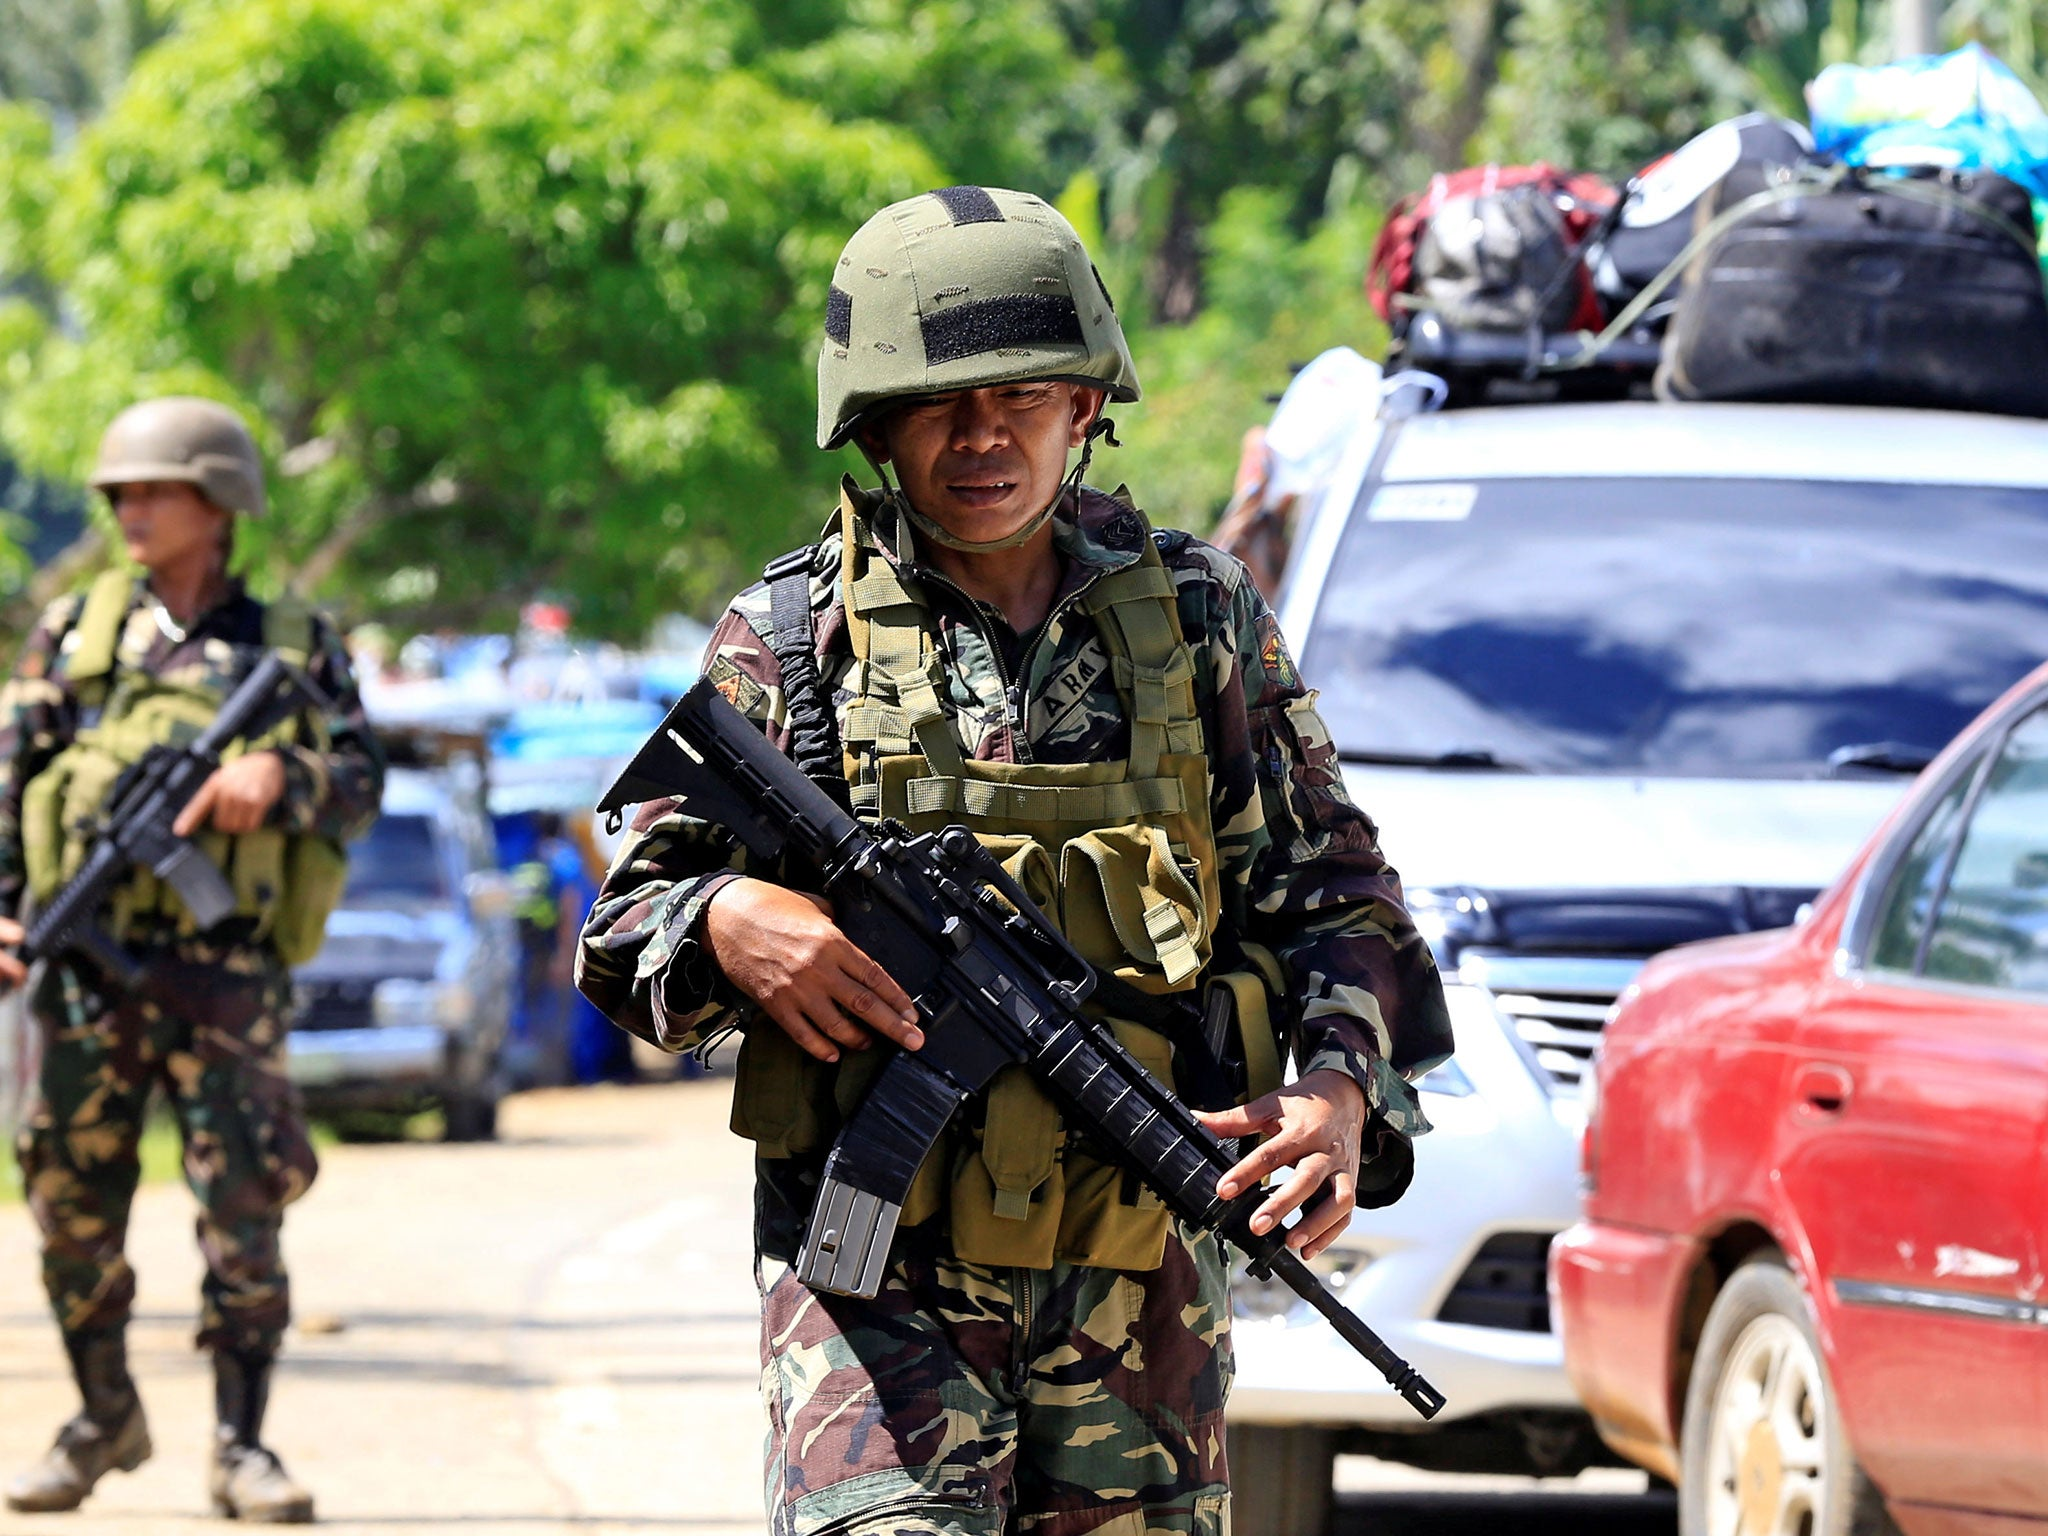 Martial law declared in Southern Philippines, ISIS-linked Islamists take priest and churchgoers hostage, beheading civilians